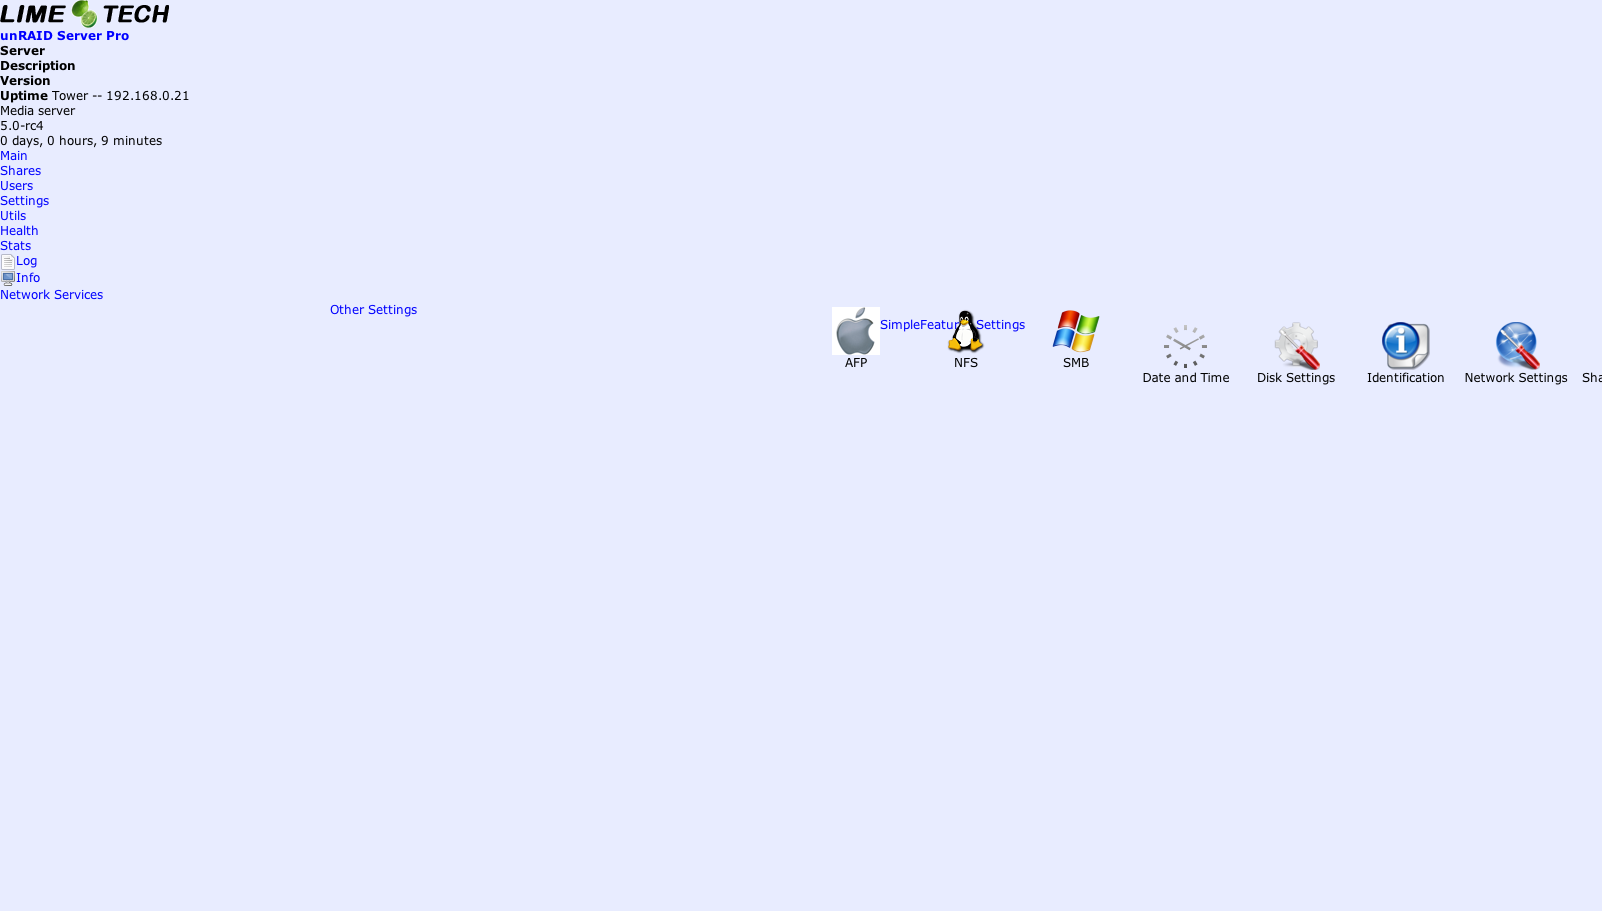 Simplefeatures_Chrome.png.46b4bb58f166b29d5947858ae6764924.png